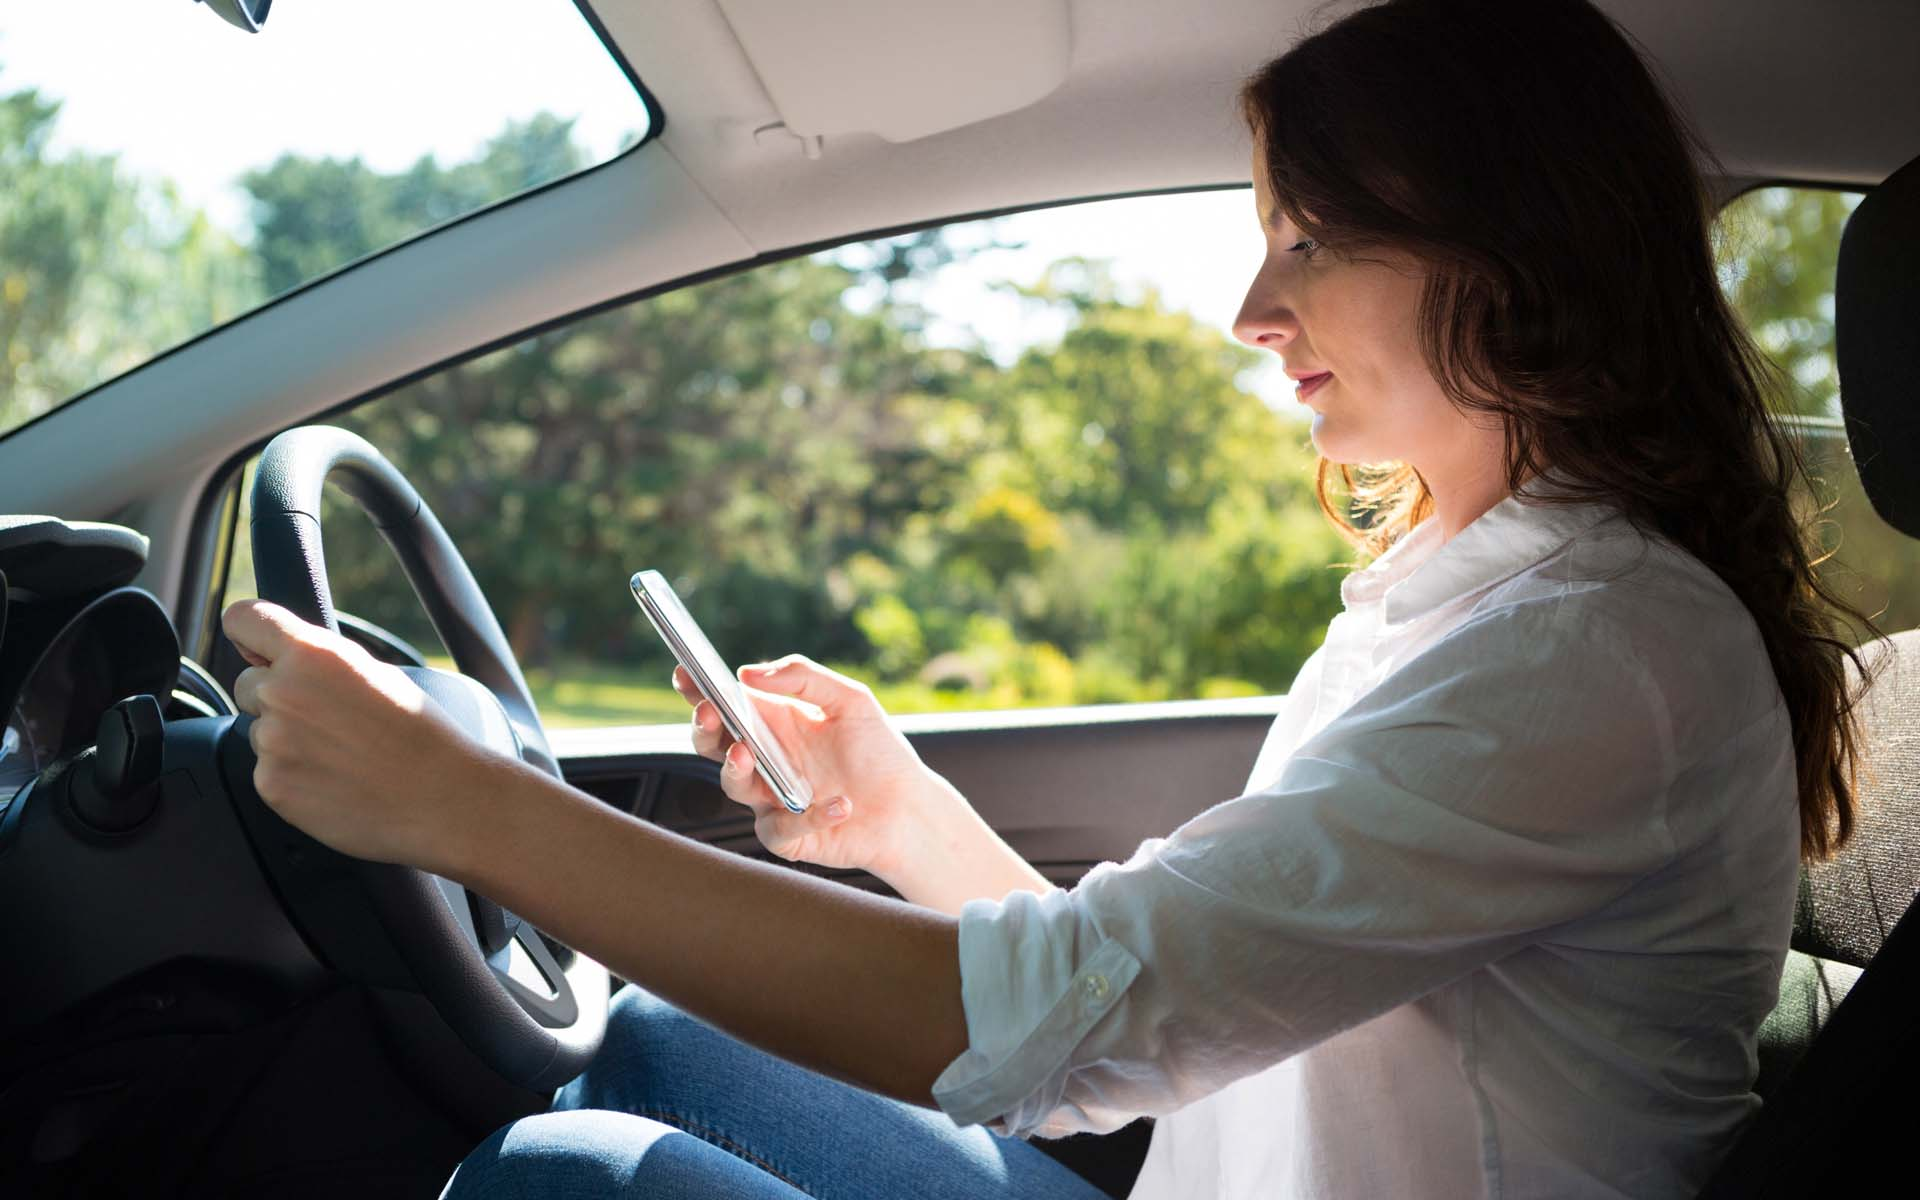 Blog - Students and distracted driving